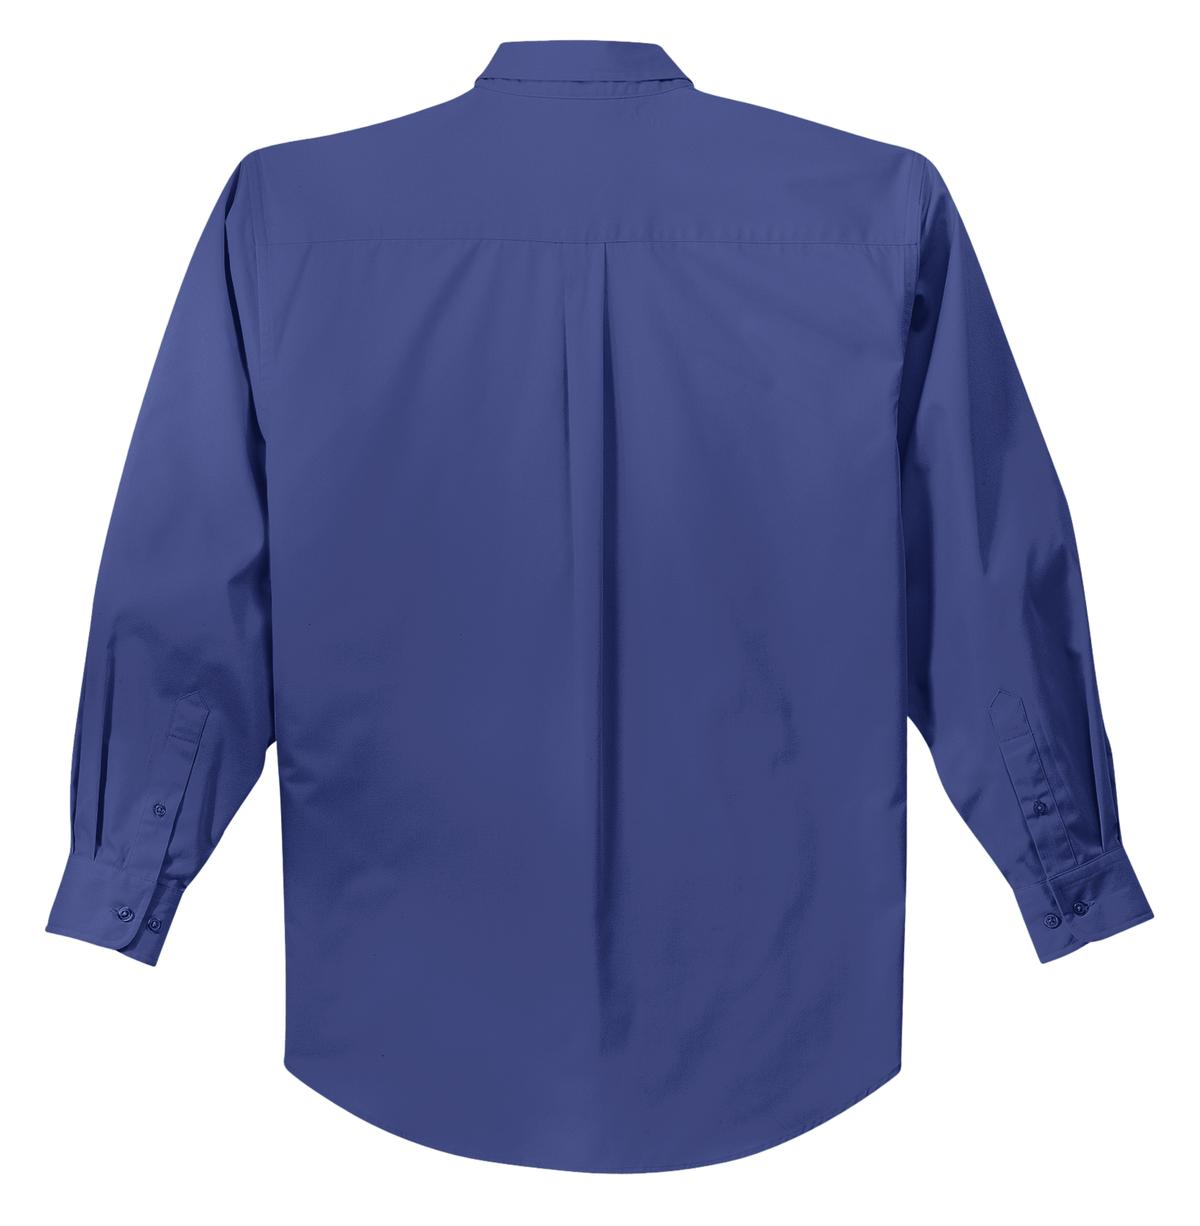 Mafoose Men's Tall Long Sleeve Easy Care Shirt Mediterranean Blue-Back